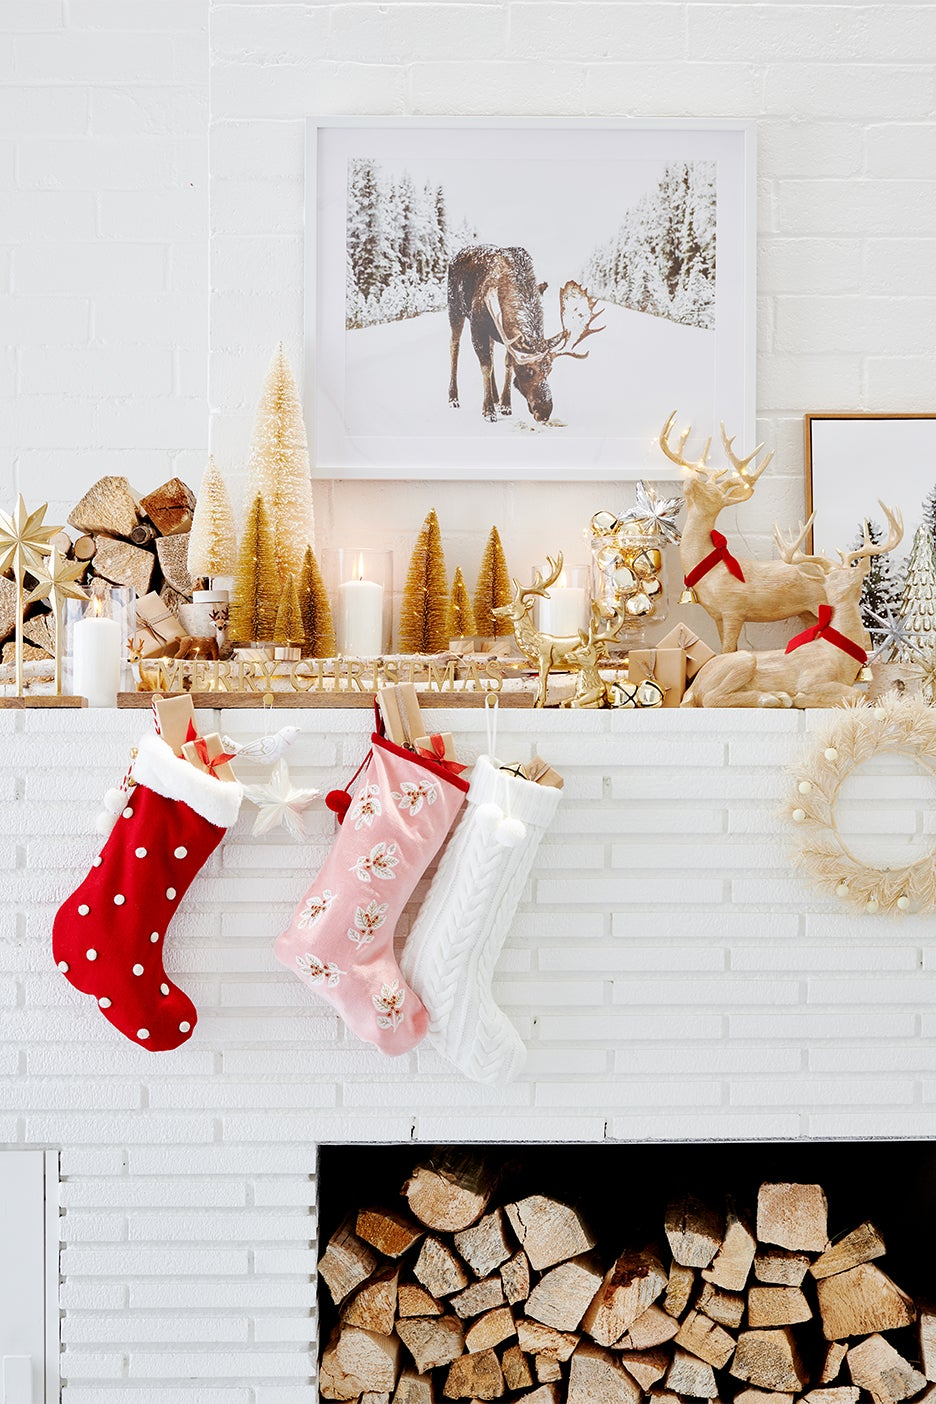 00-FEATURE-target-holiday-mantle-hacks-domino